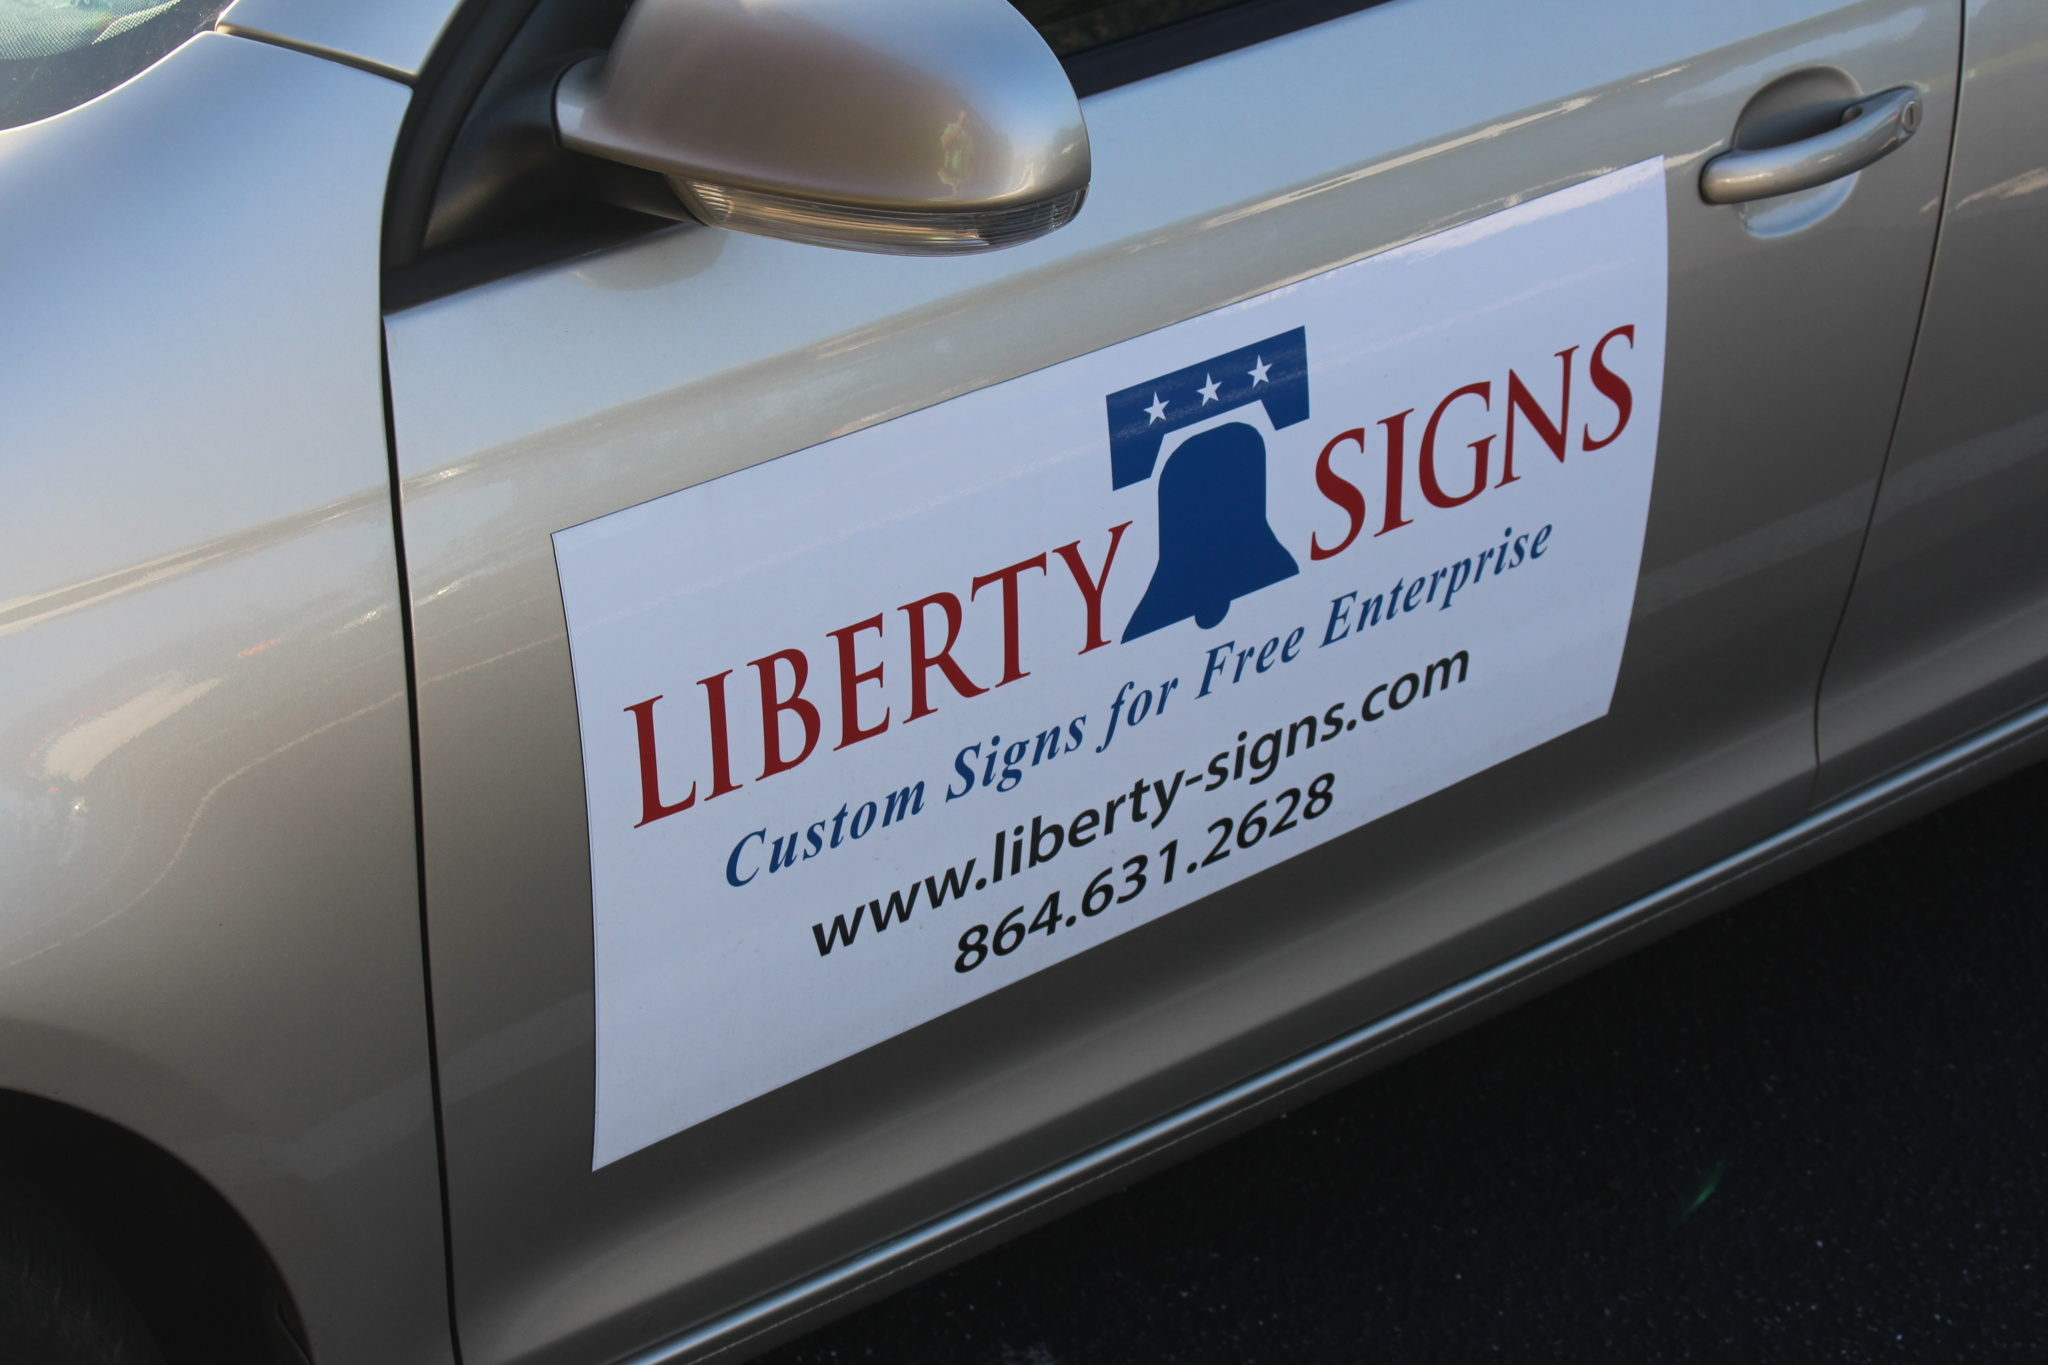 Magnetic vehicle sign convenience with your marketing advantages